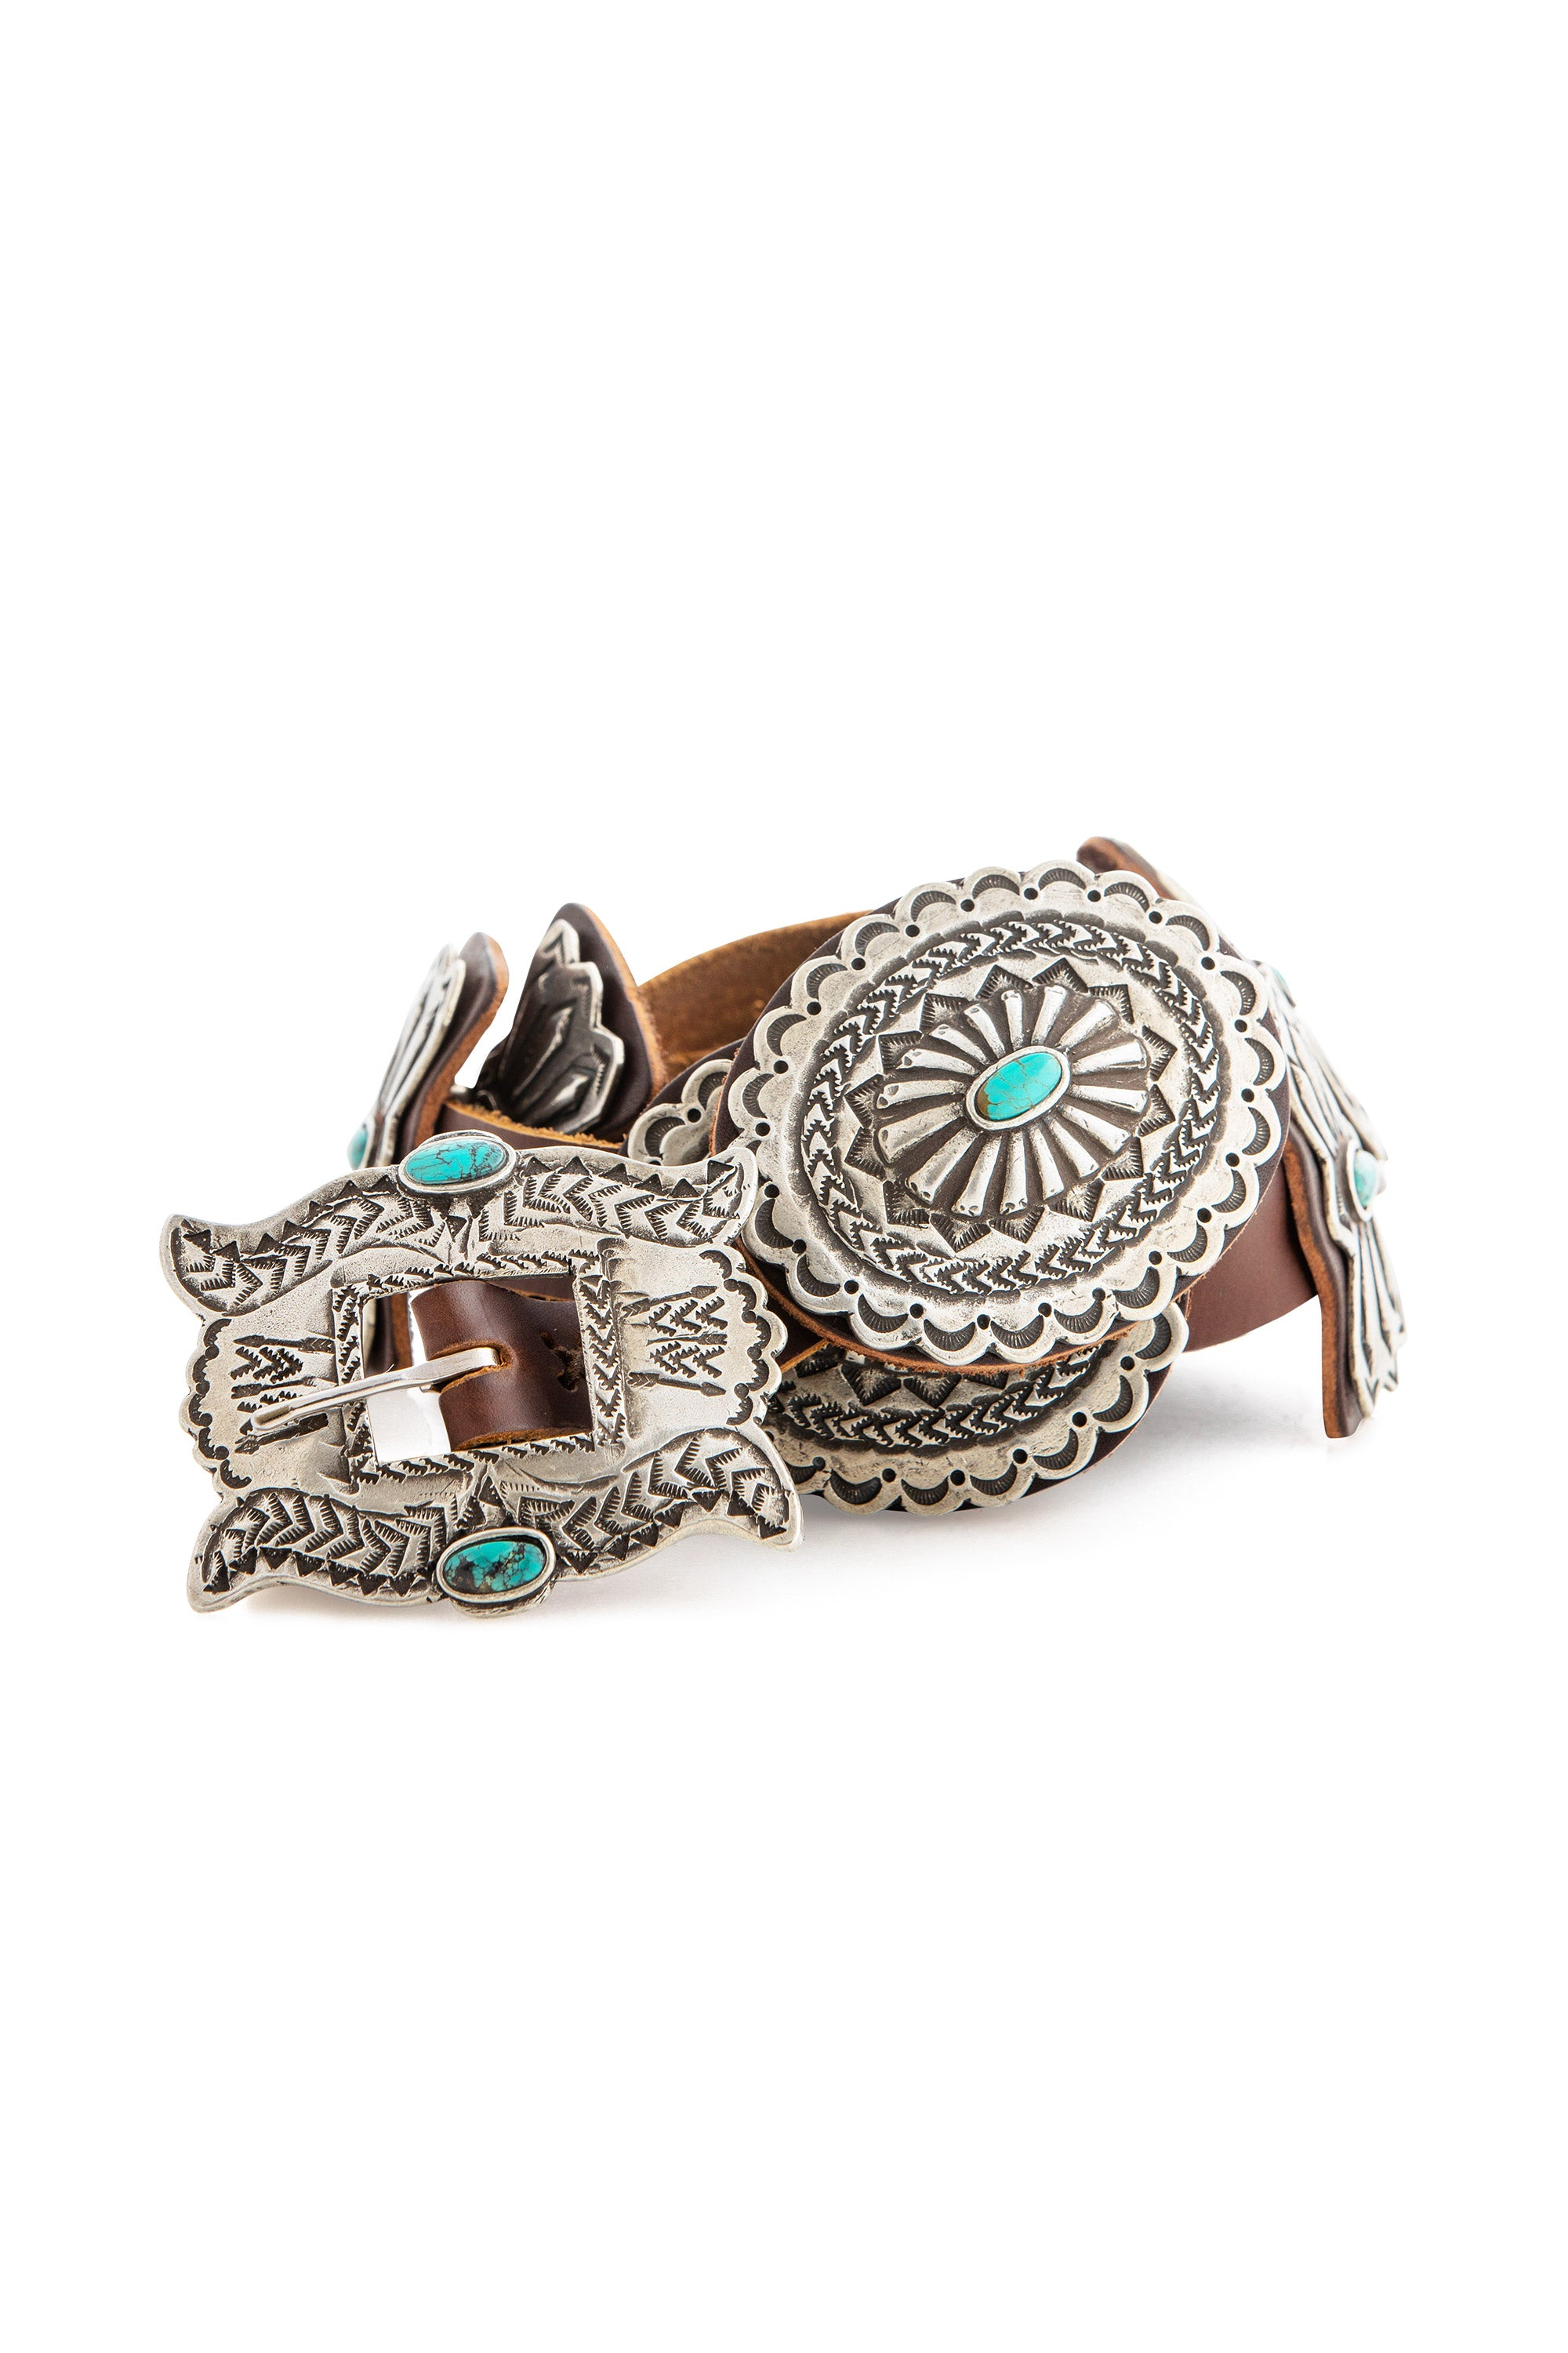 Belt, Concho, Turquoise, Reproduction, 785